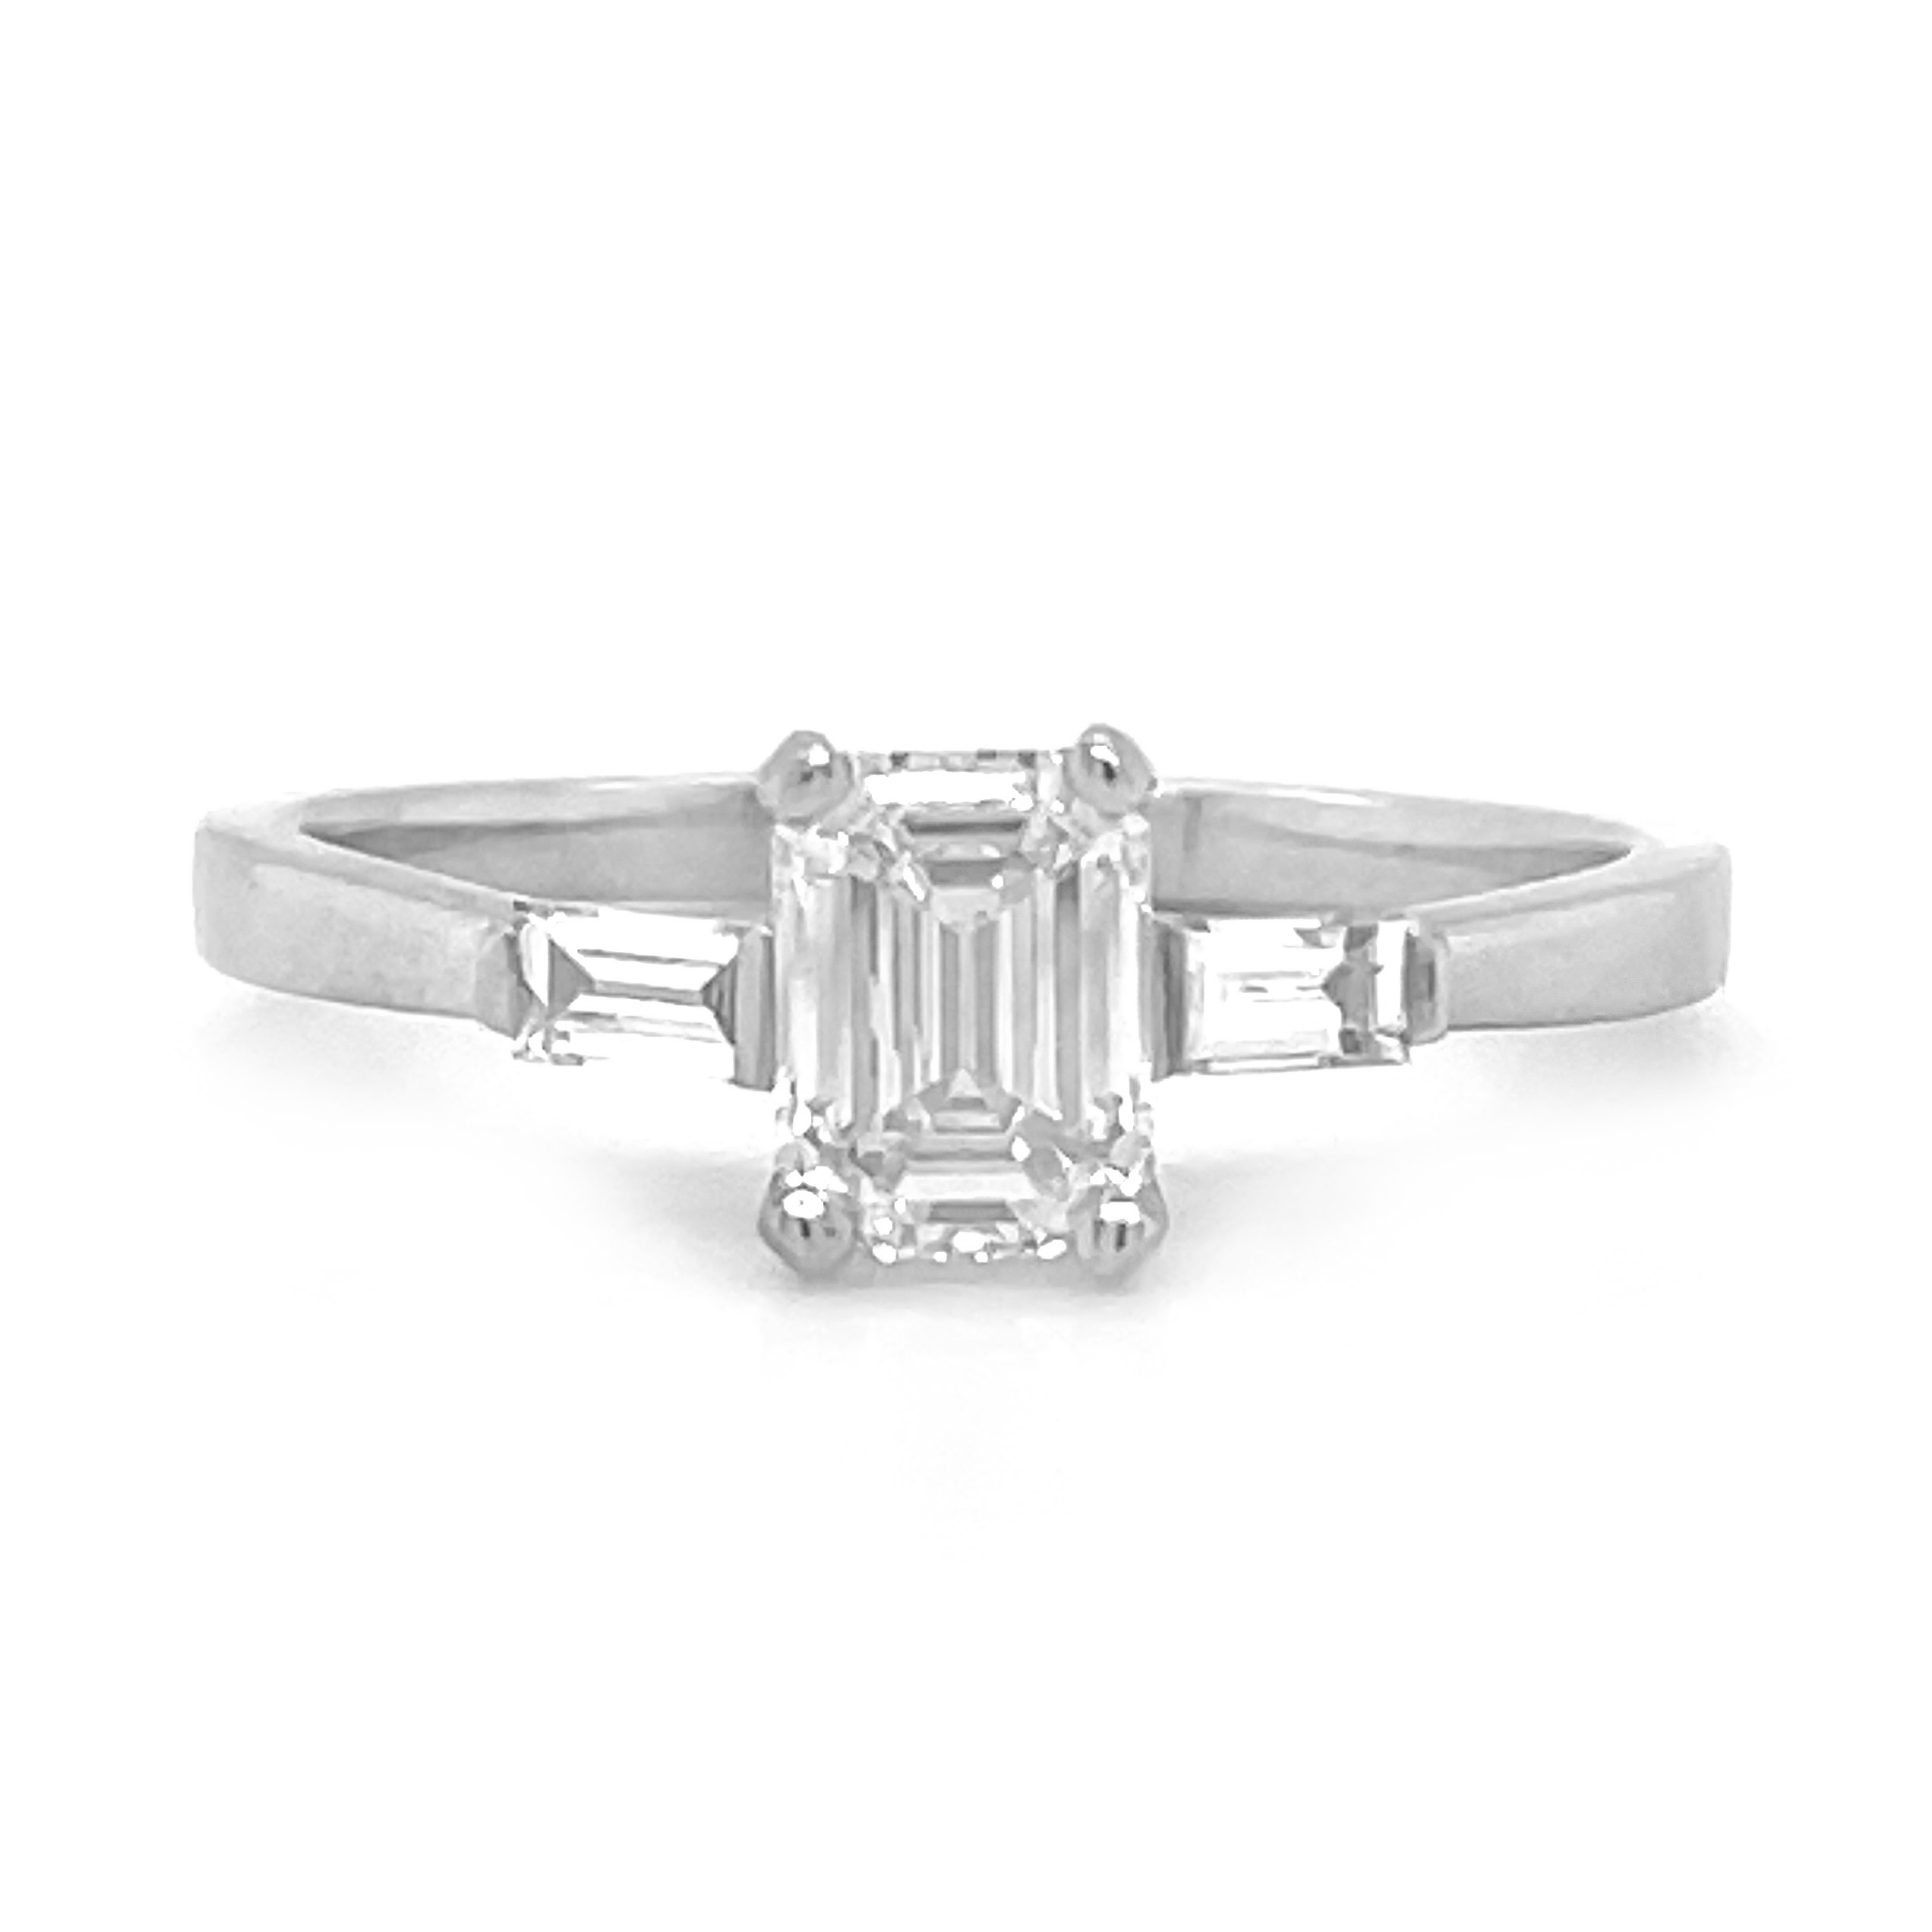 Emerald Cut 1.01cts Diamond Solitaire Engagement Ring